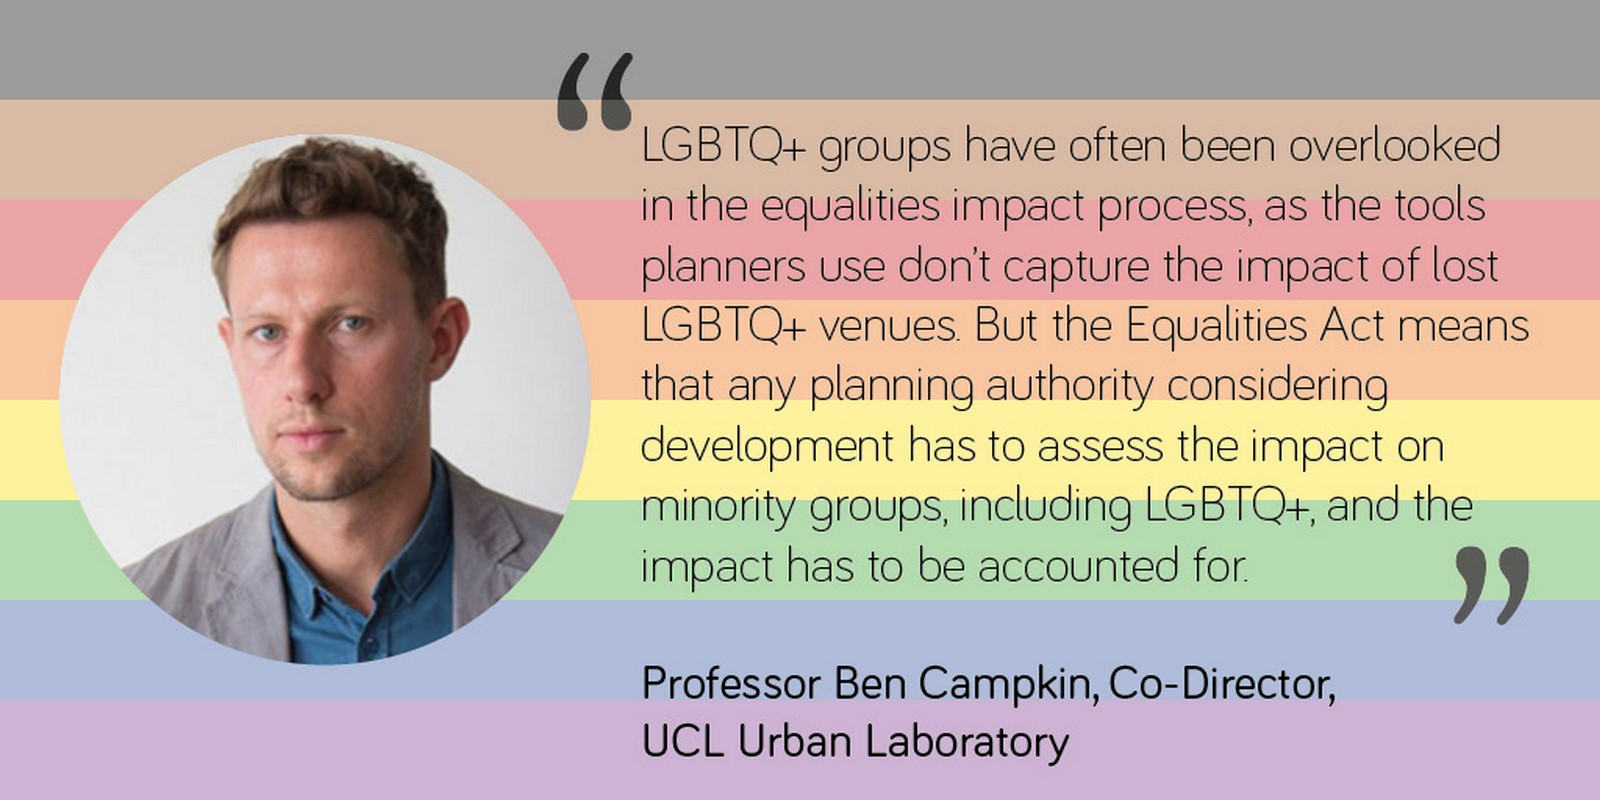 10 Architects or Designers advocating for LGBTQA+ Community - Sheet2